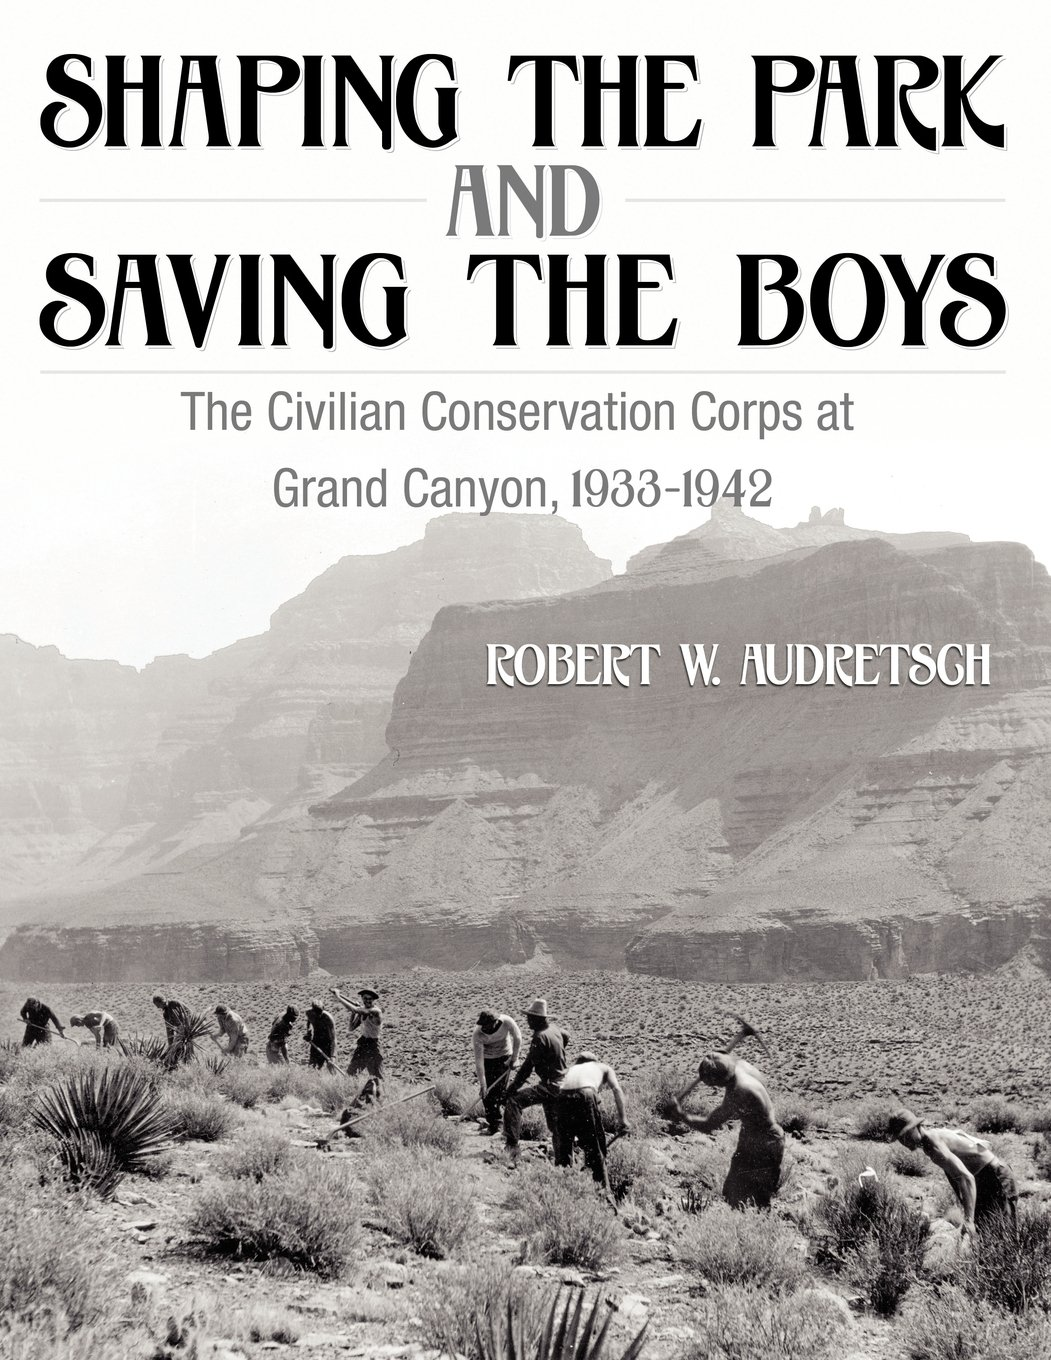 c6646abd1a Shaping the Park and Saving the Boys  The Civilian Conservation ...